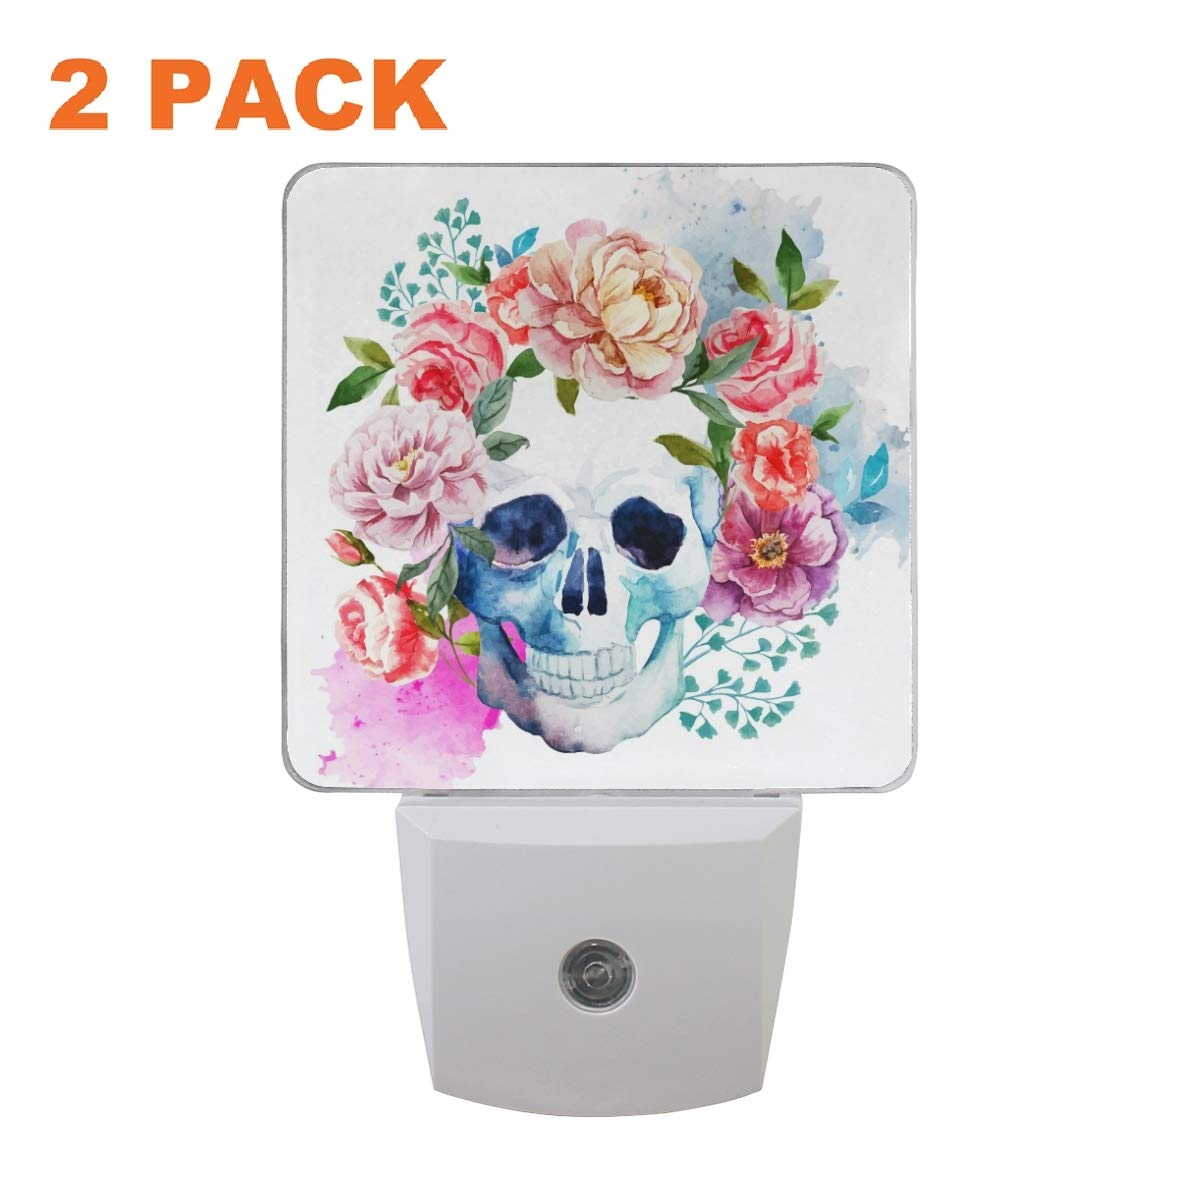 UMIRIKO Skull Flowers Night Light 2 Pack Gothic Watercolor Pattern LED Nightlights Lamp Plug into Wall Kids Room Decorative 0.5W Auto Dusk-to-Dawn for Bedroom 2020153